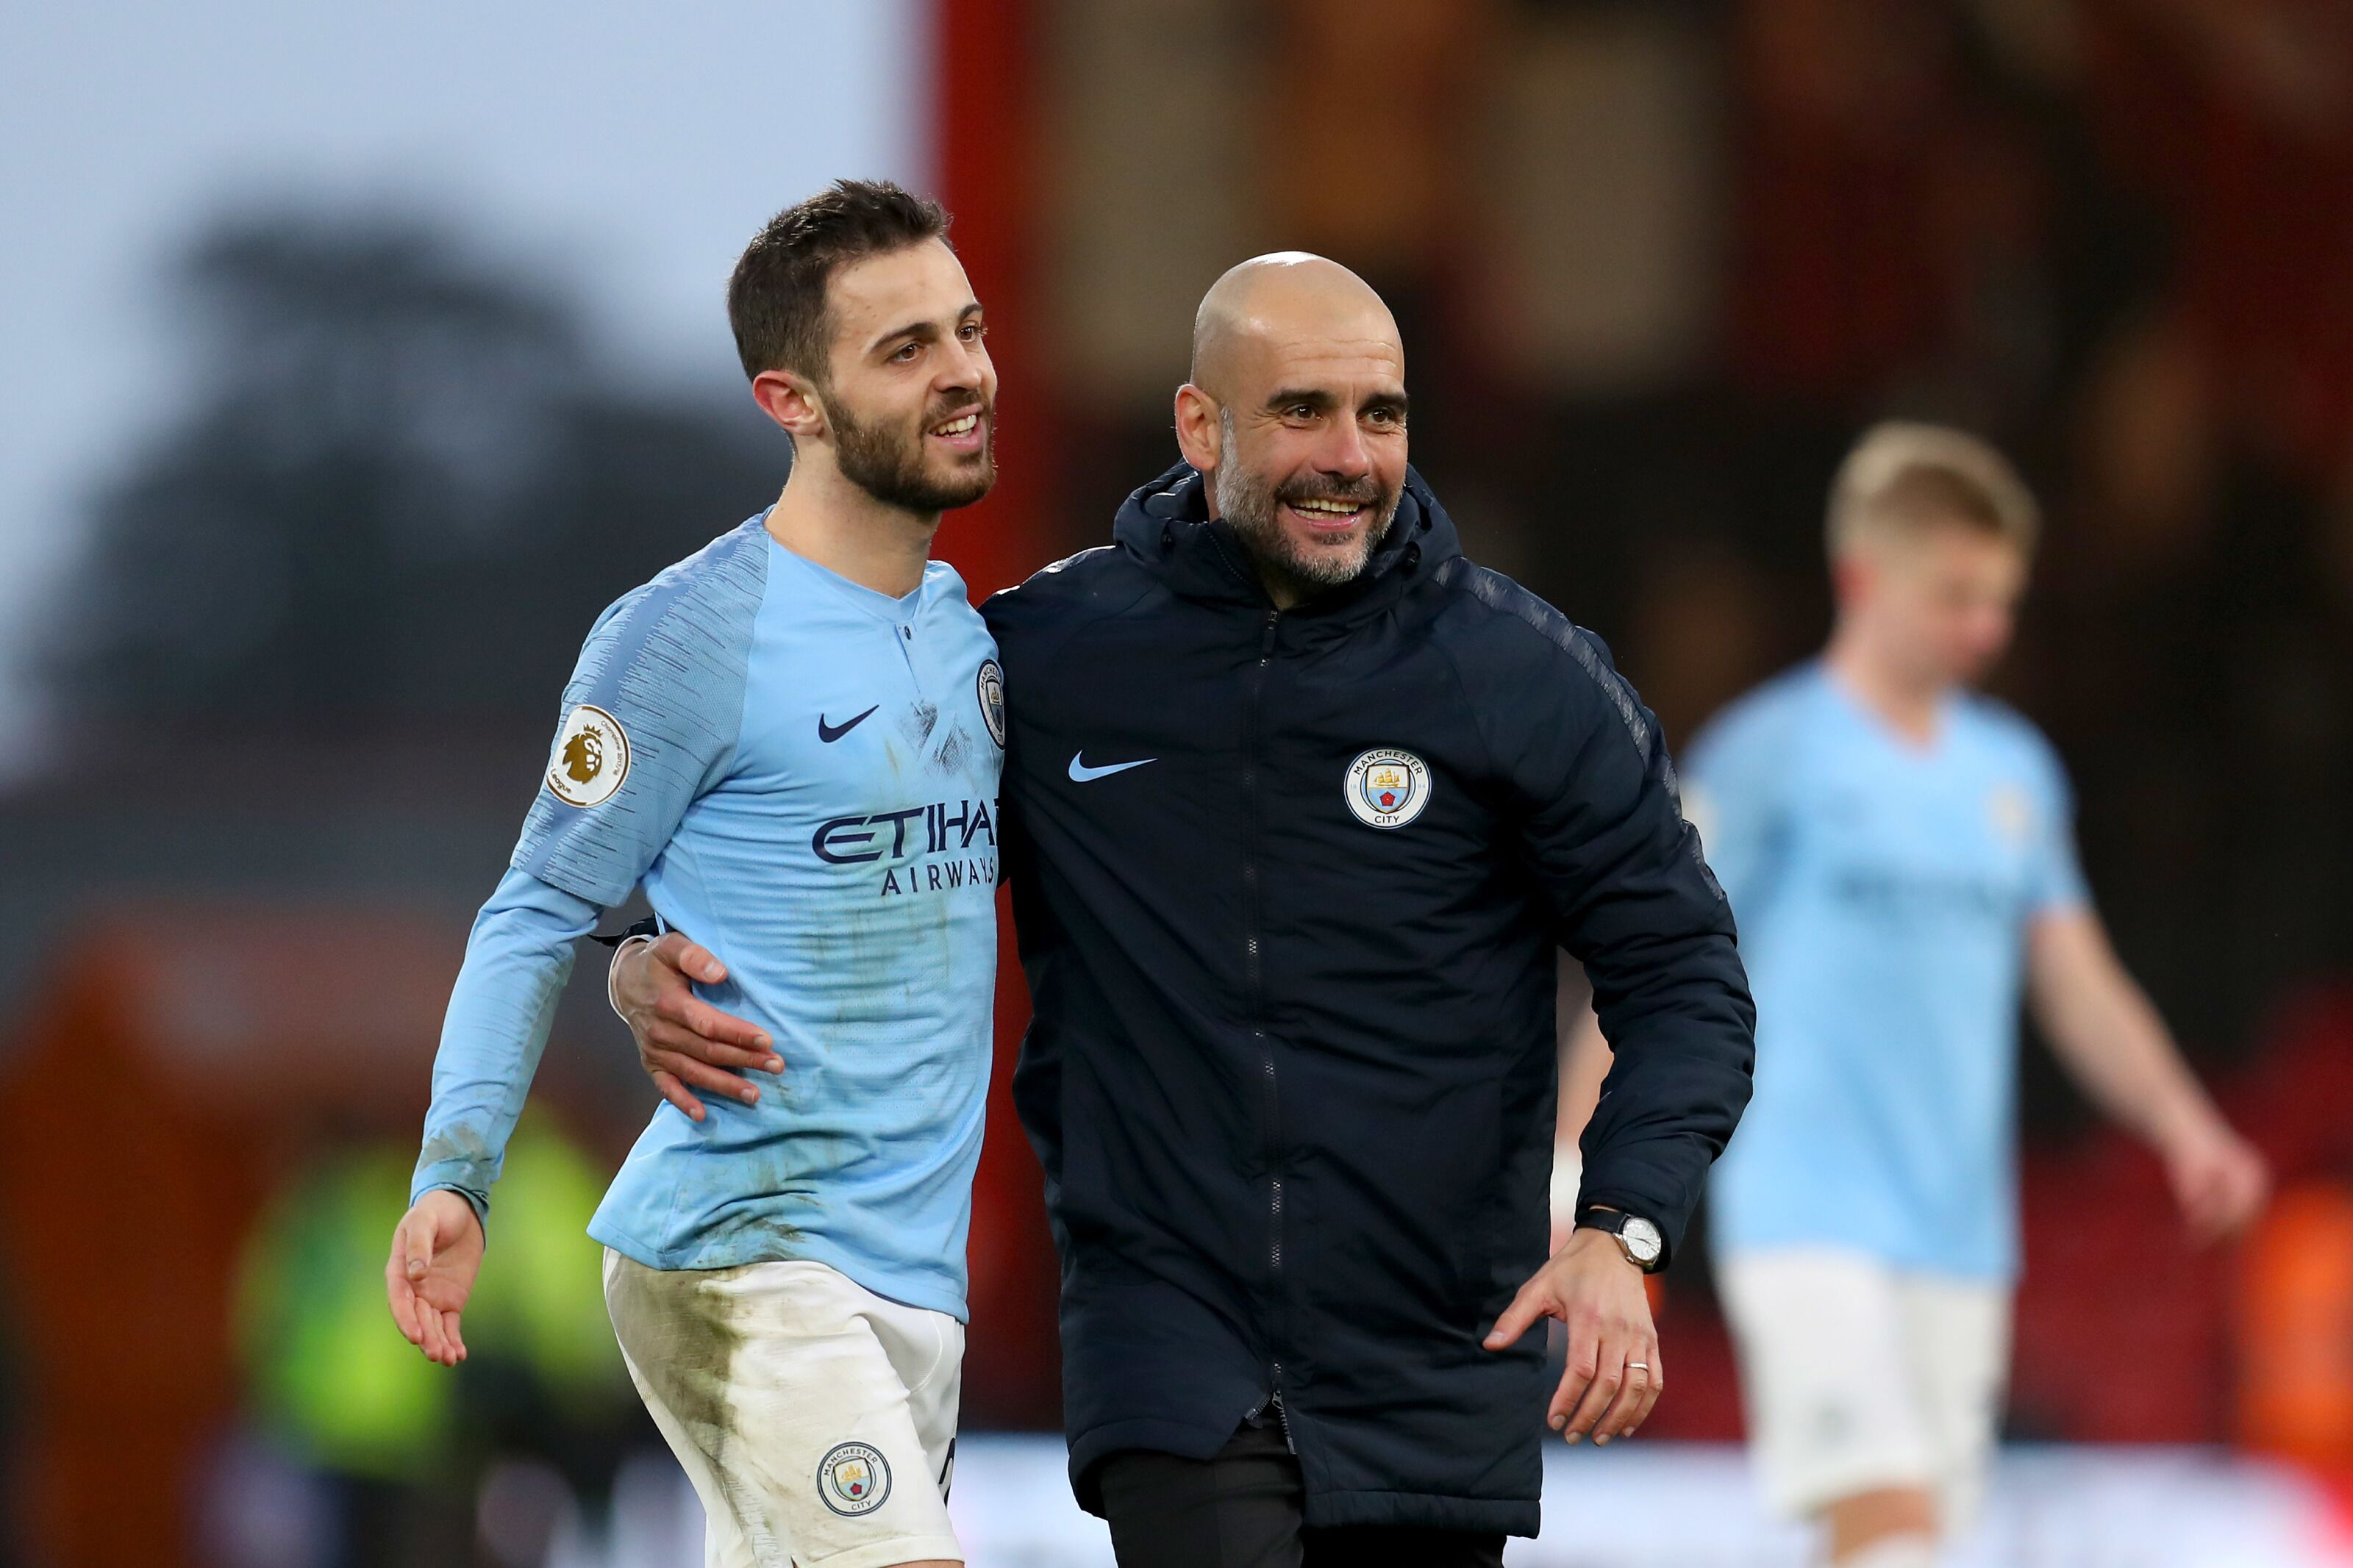 Manchester City star seeks Real Madrid move after fallout with Pep Guardiola